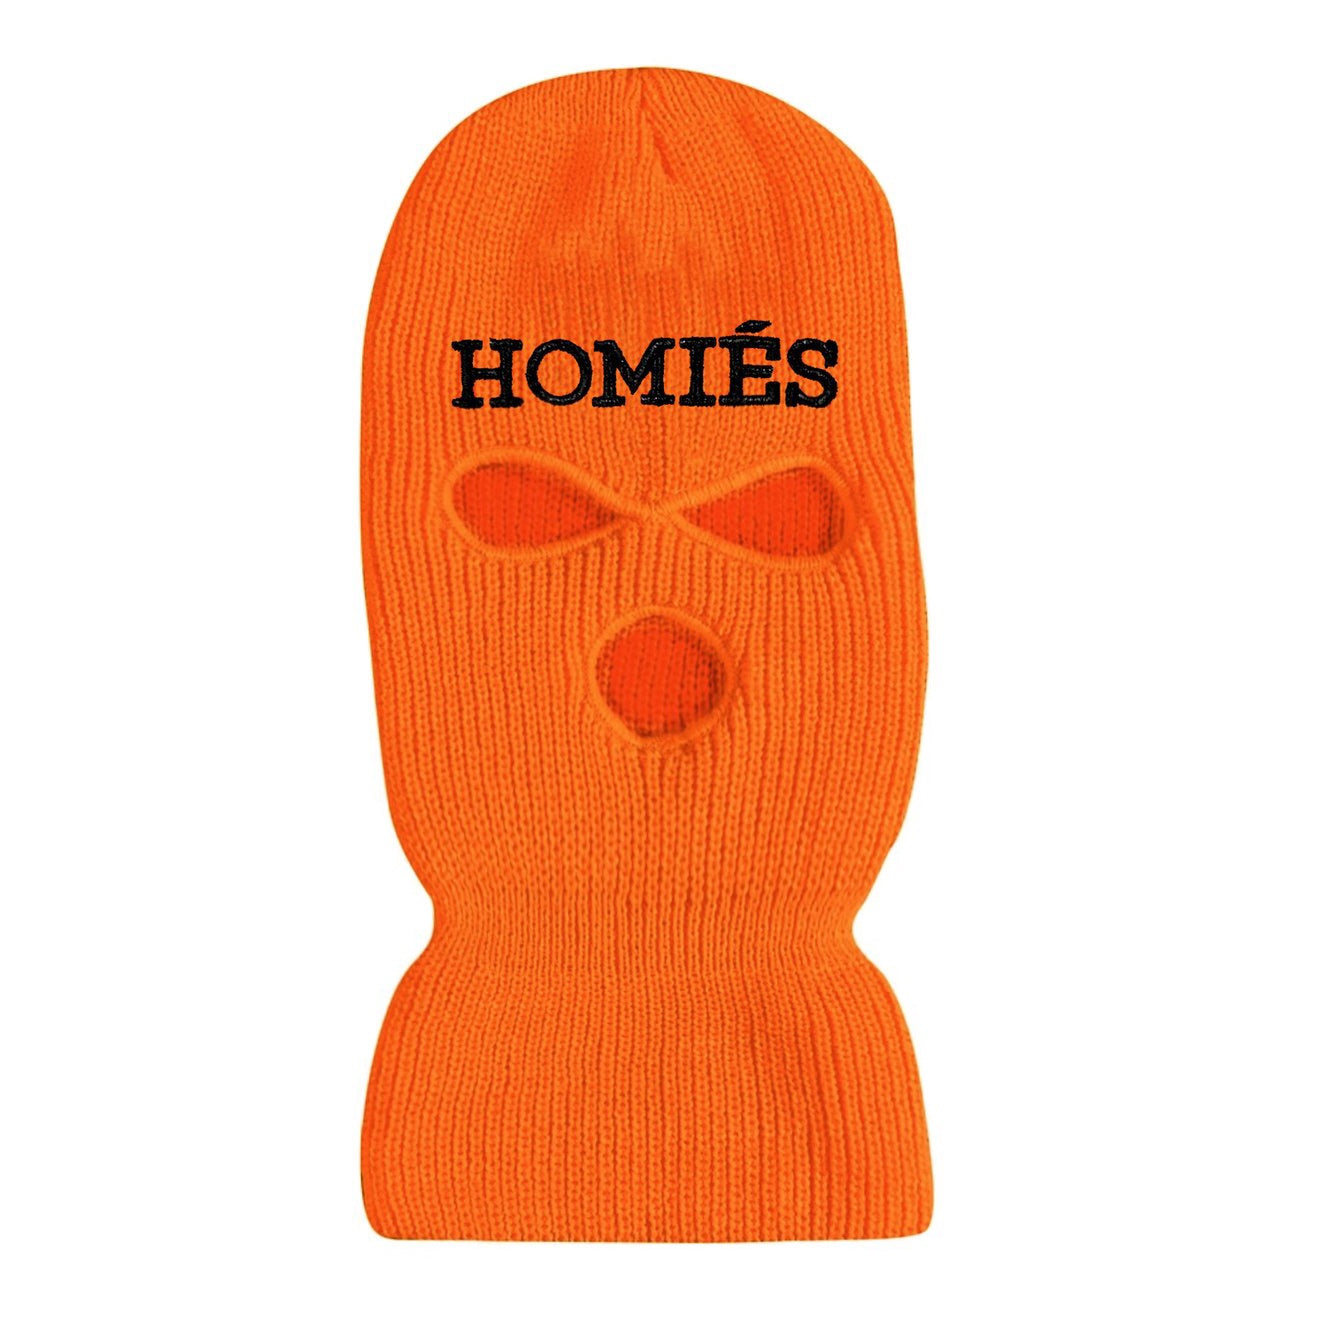 HOMIÉS NEON ORANGE/BLACK SKI MASK BEANIE